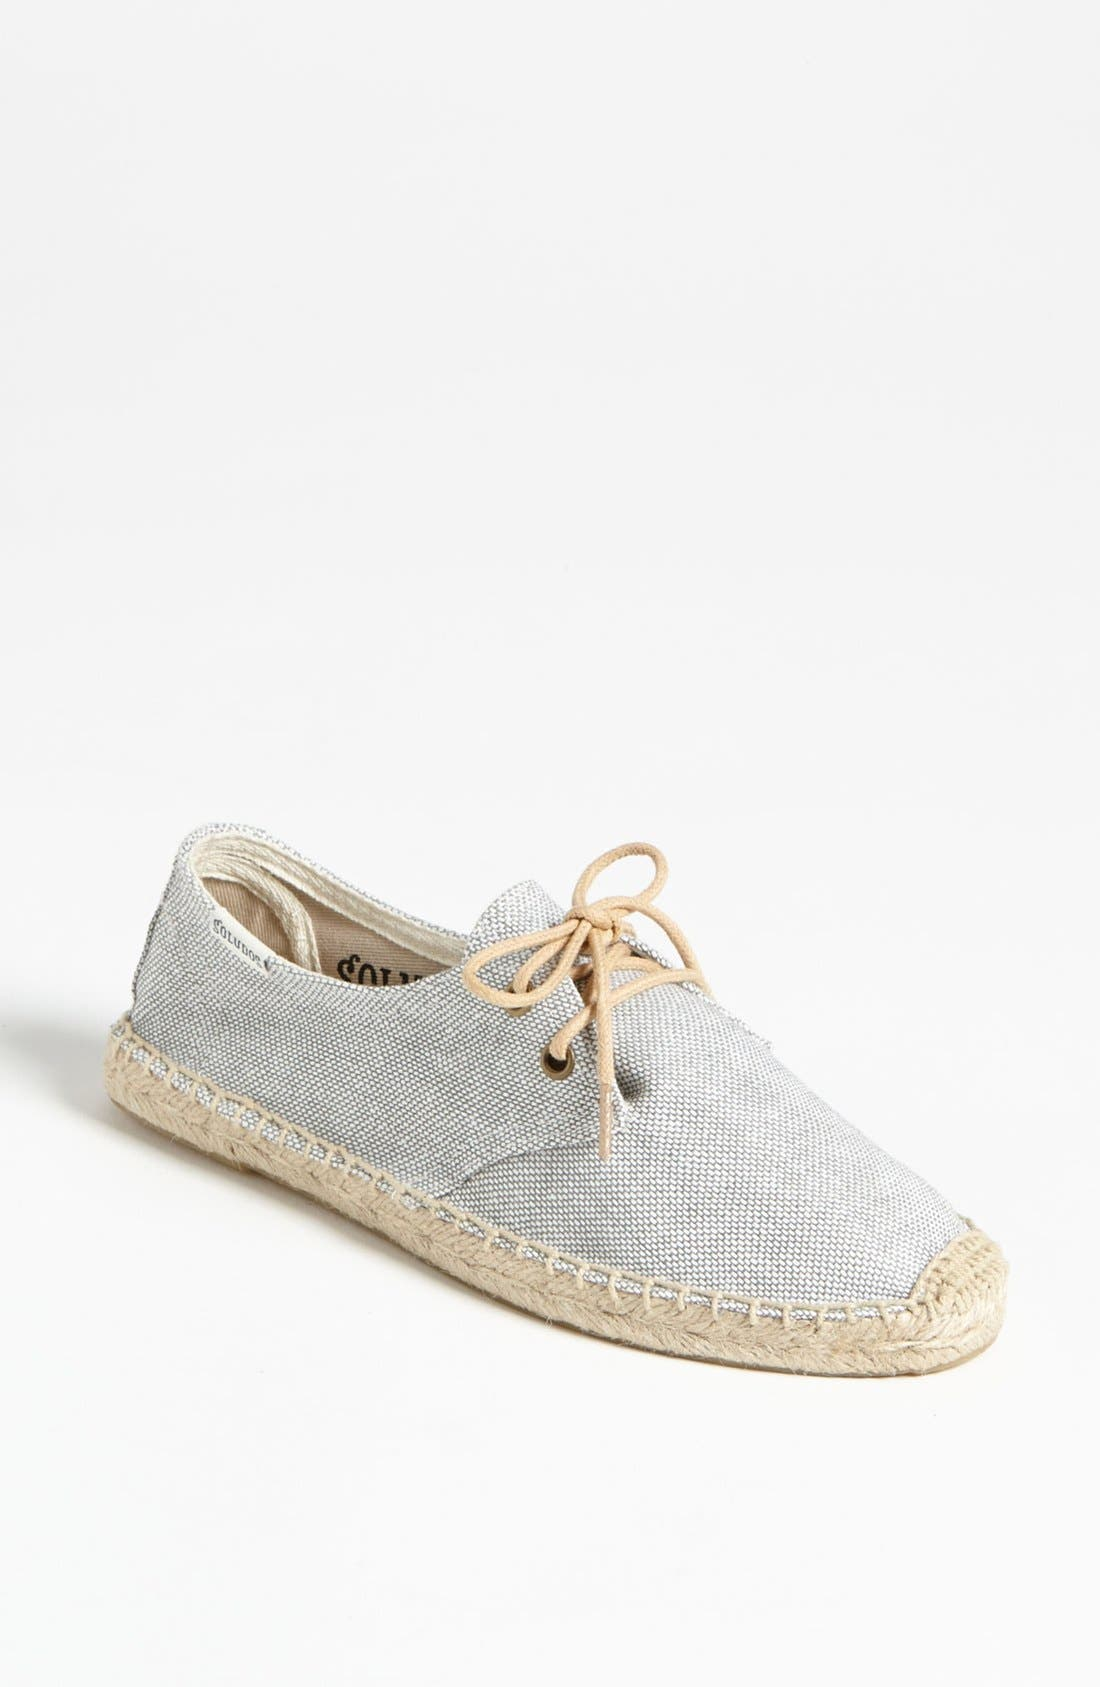 Alternate Image 1 Selected - Soludos 'Derby' Espadrille Sneaker (Women)